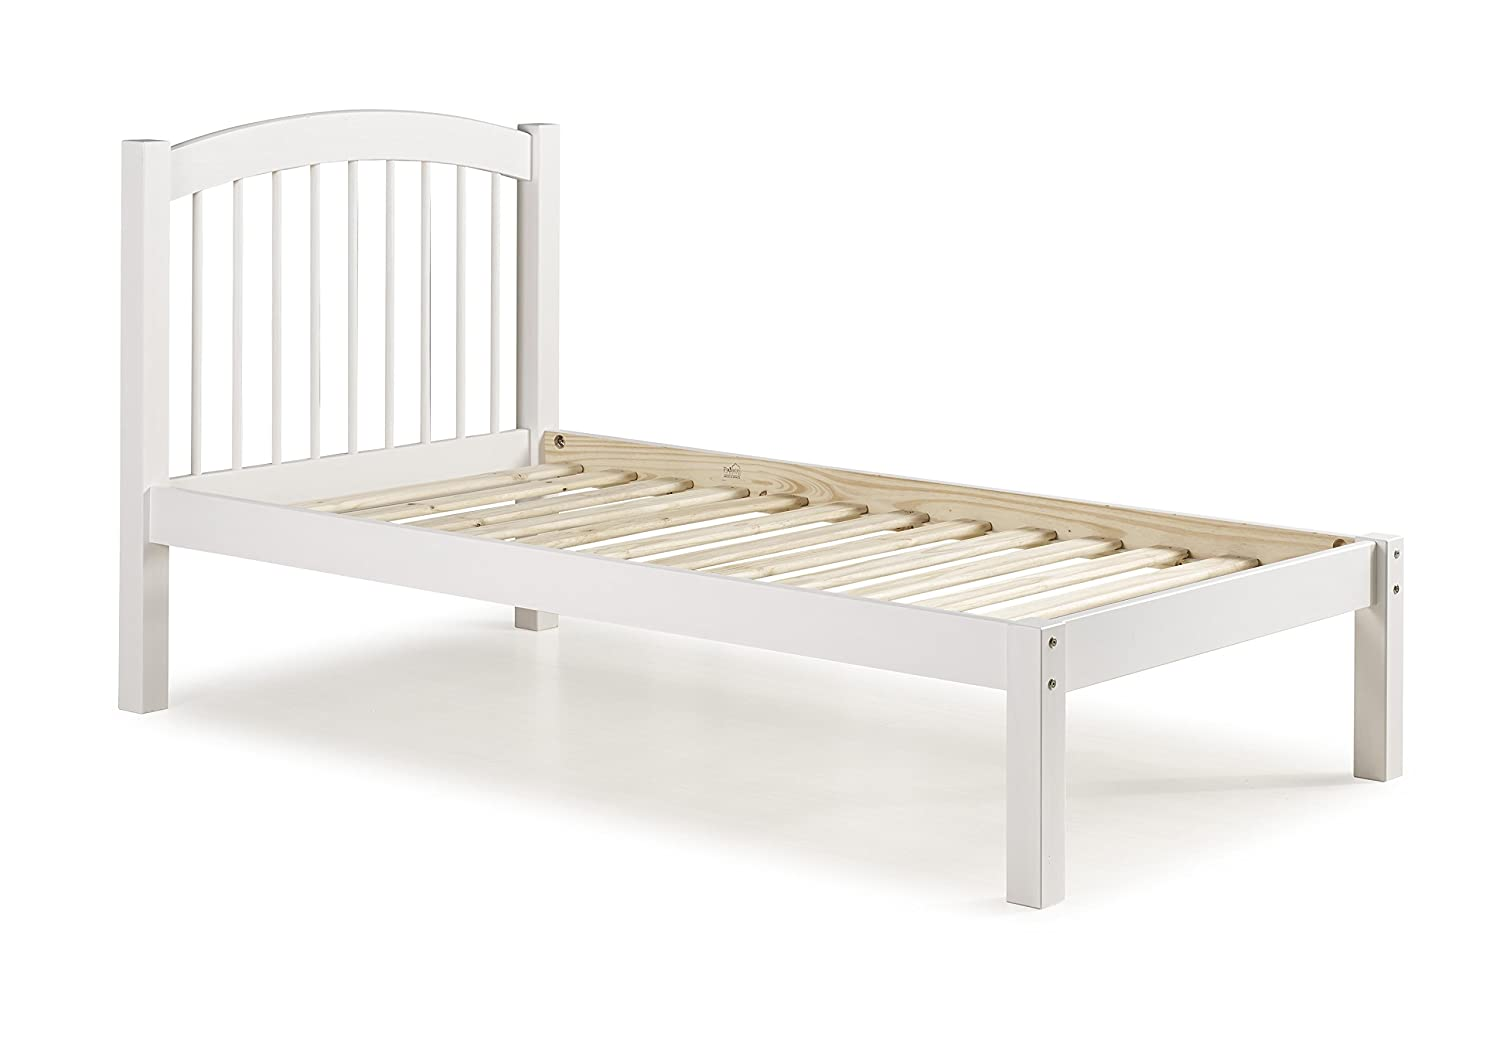 100 solid wood alaska twin platform bed 445quothx43quotwx80quotl for Futon bunk beds with mattress included